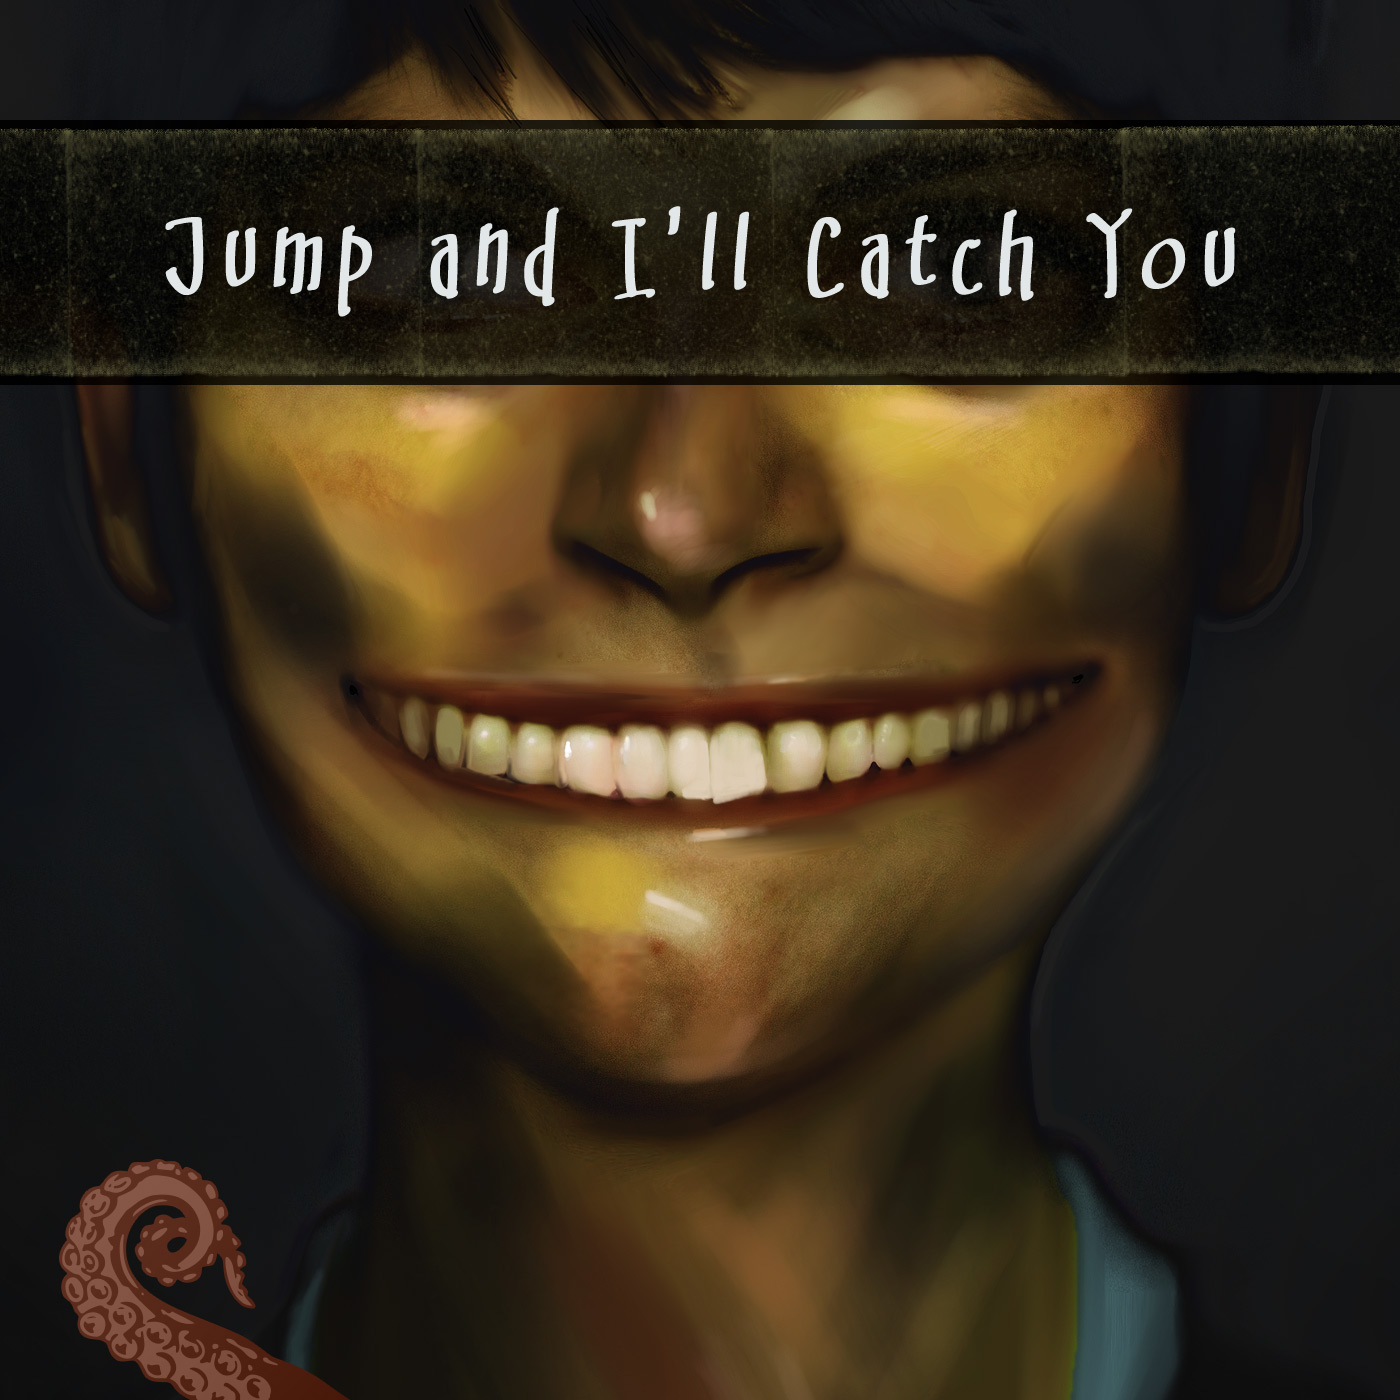 Drabblecast Cover for Jump and I'll Catch You by Bo Kaier